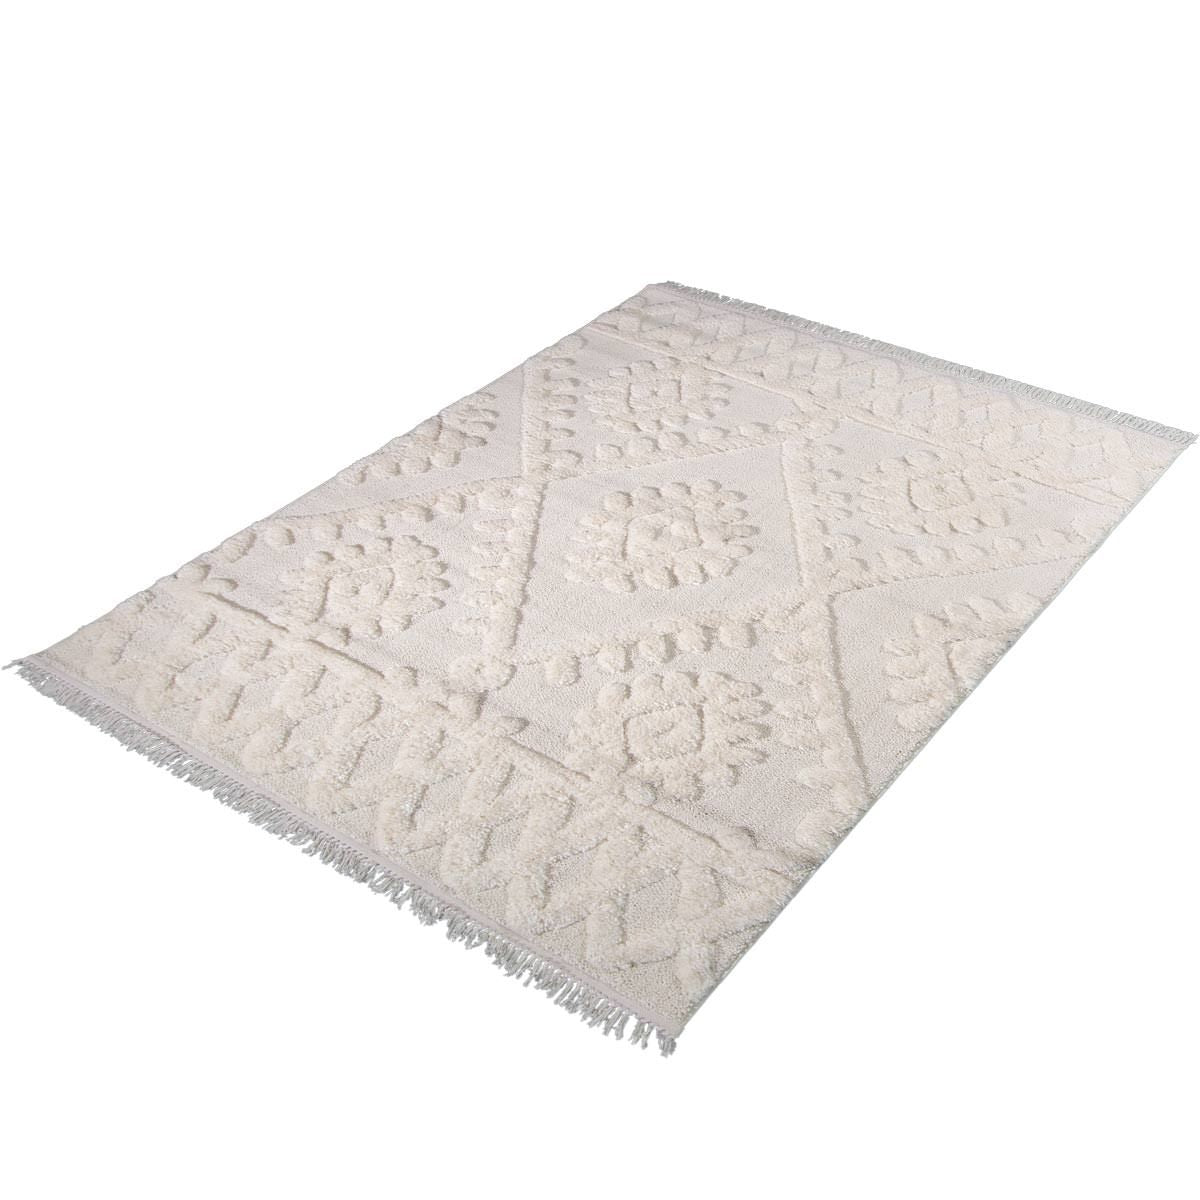 Atlas Rug 11 Cream - Fringes 8